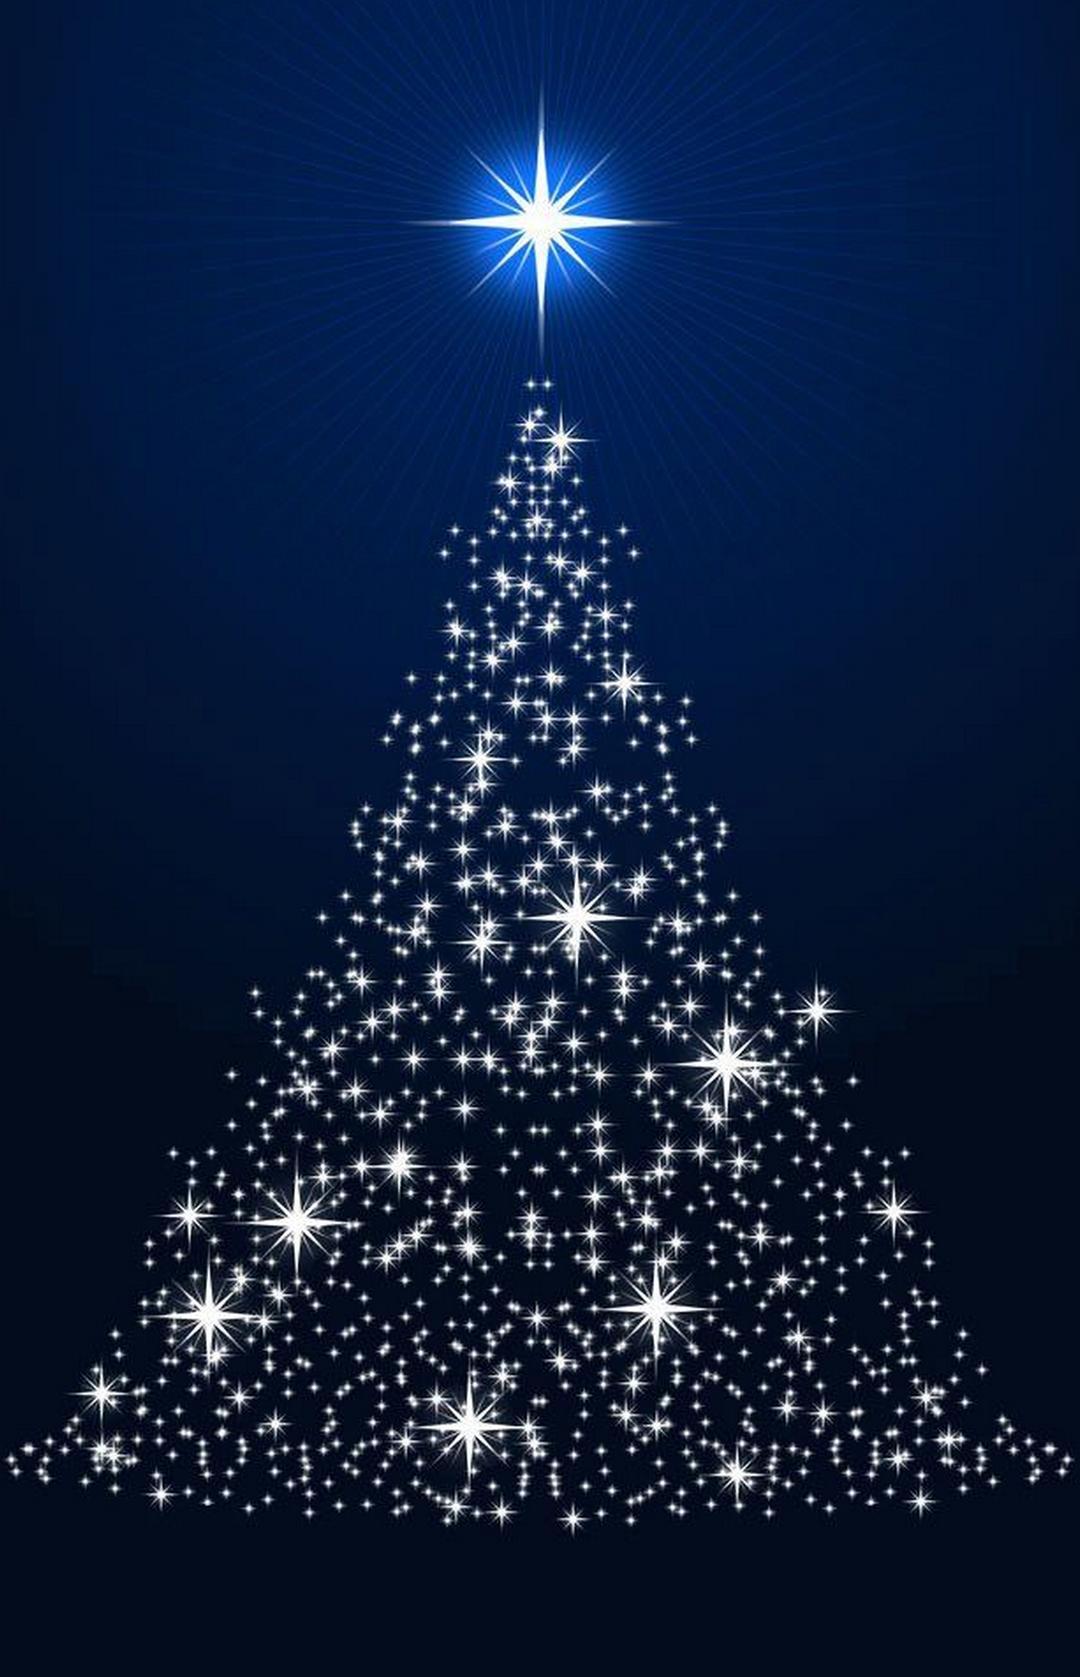 Christmas Tree HD Wallpapers 2019 for Android   APK Download 1080x1677